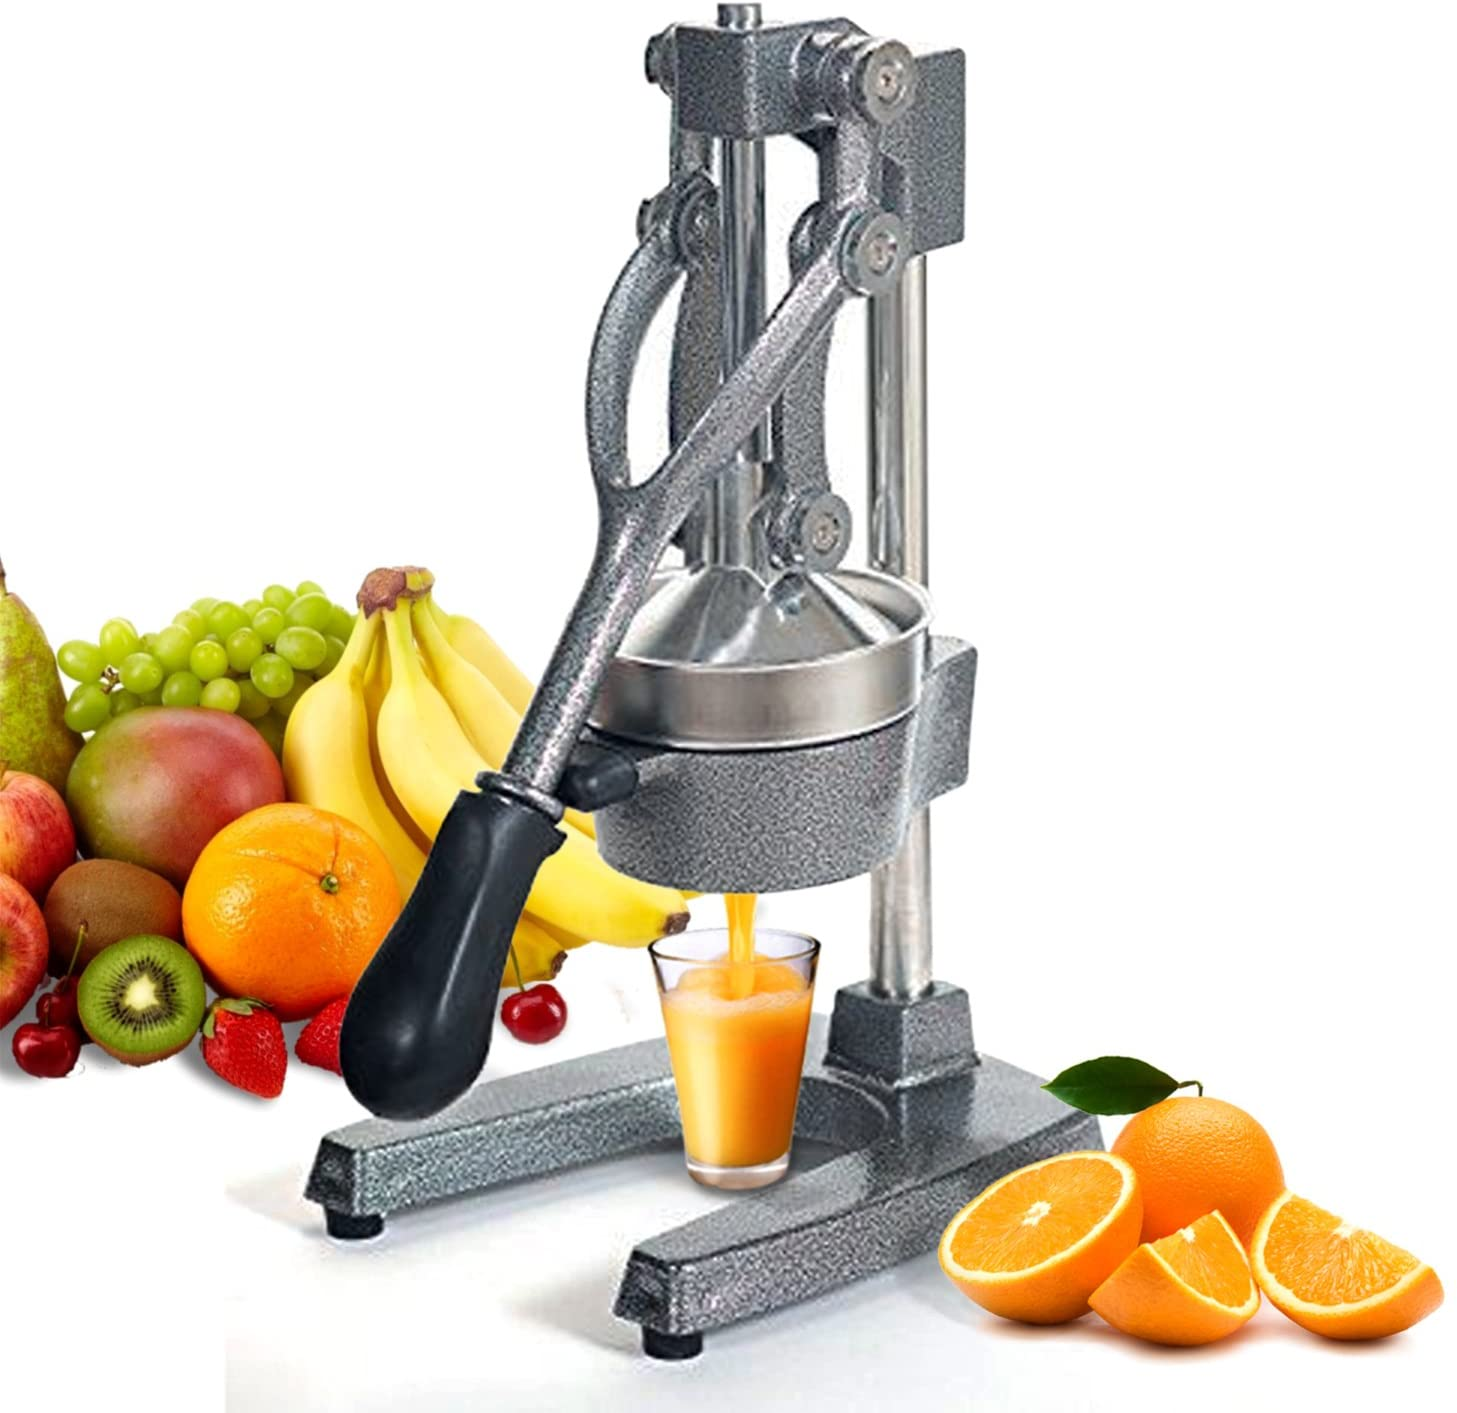 ZENY Commercial Grade Hand Press Manual Juicer